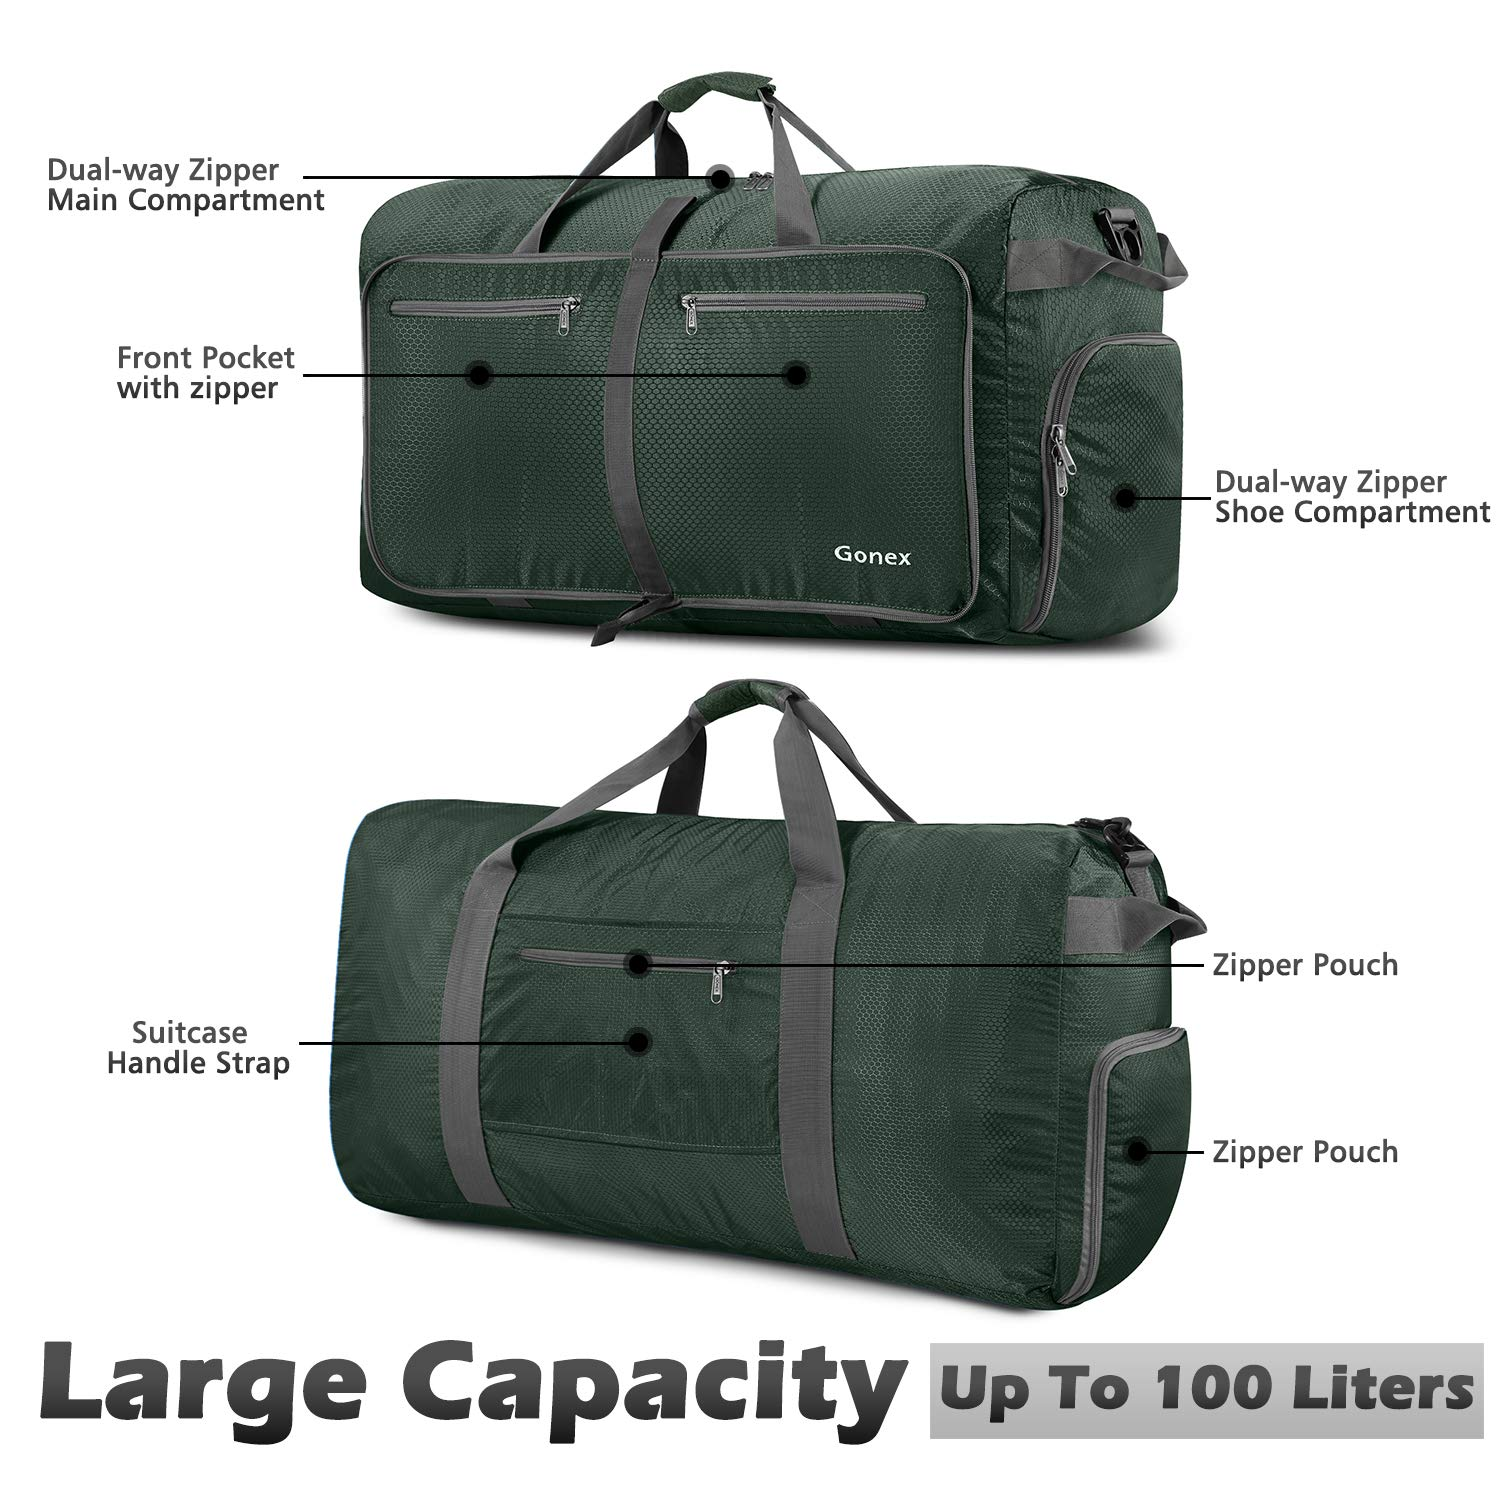 Gonex 100L Foldable Travel Duffel Bag for Luggage Gym Sports, Lightweight  Travel Bag with Big Capacity, Water Resistant (Dark Green)  Amazon.in   Bags, ... ae1f80764e